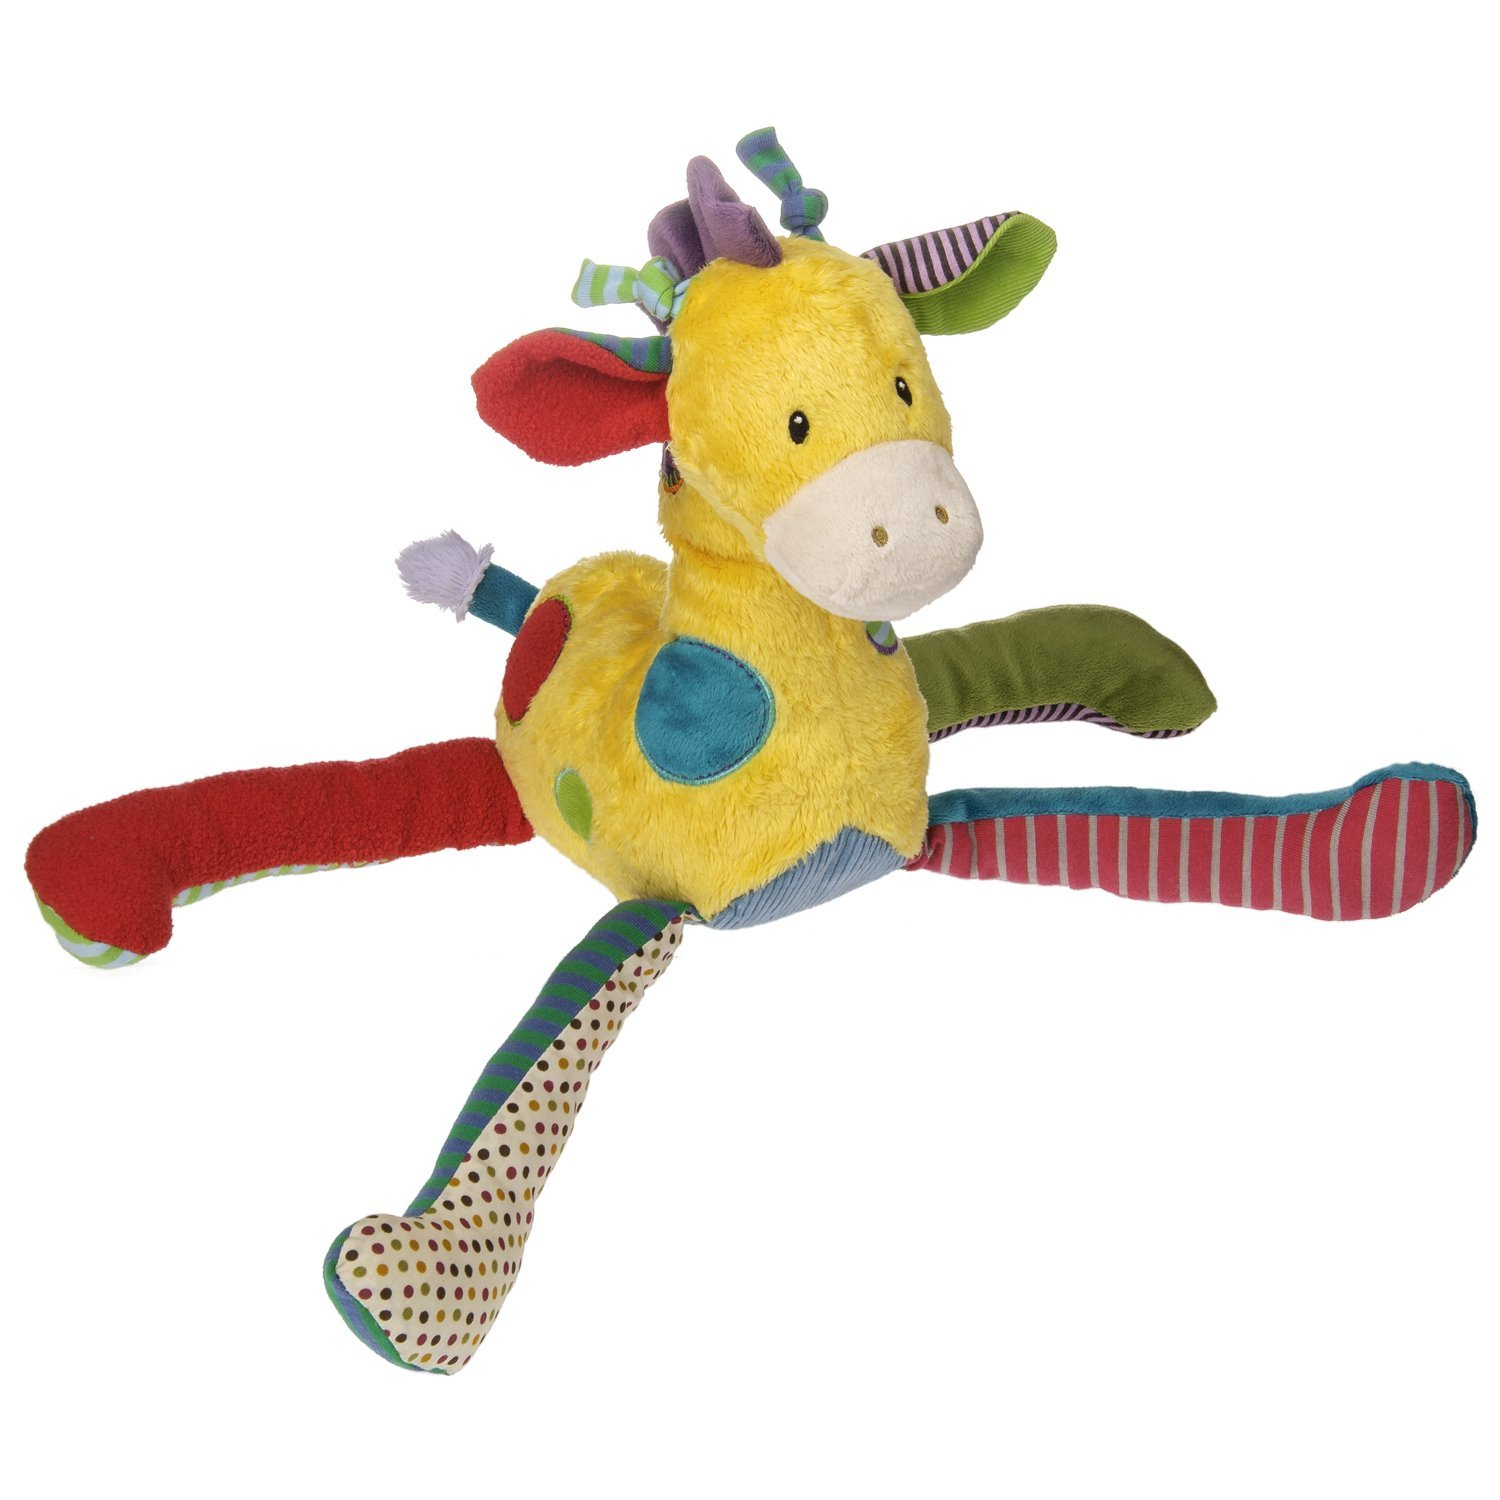 Natural Life Baby Mary Meyer Plush Toy, Dream Big Giraffe